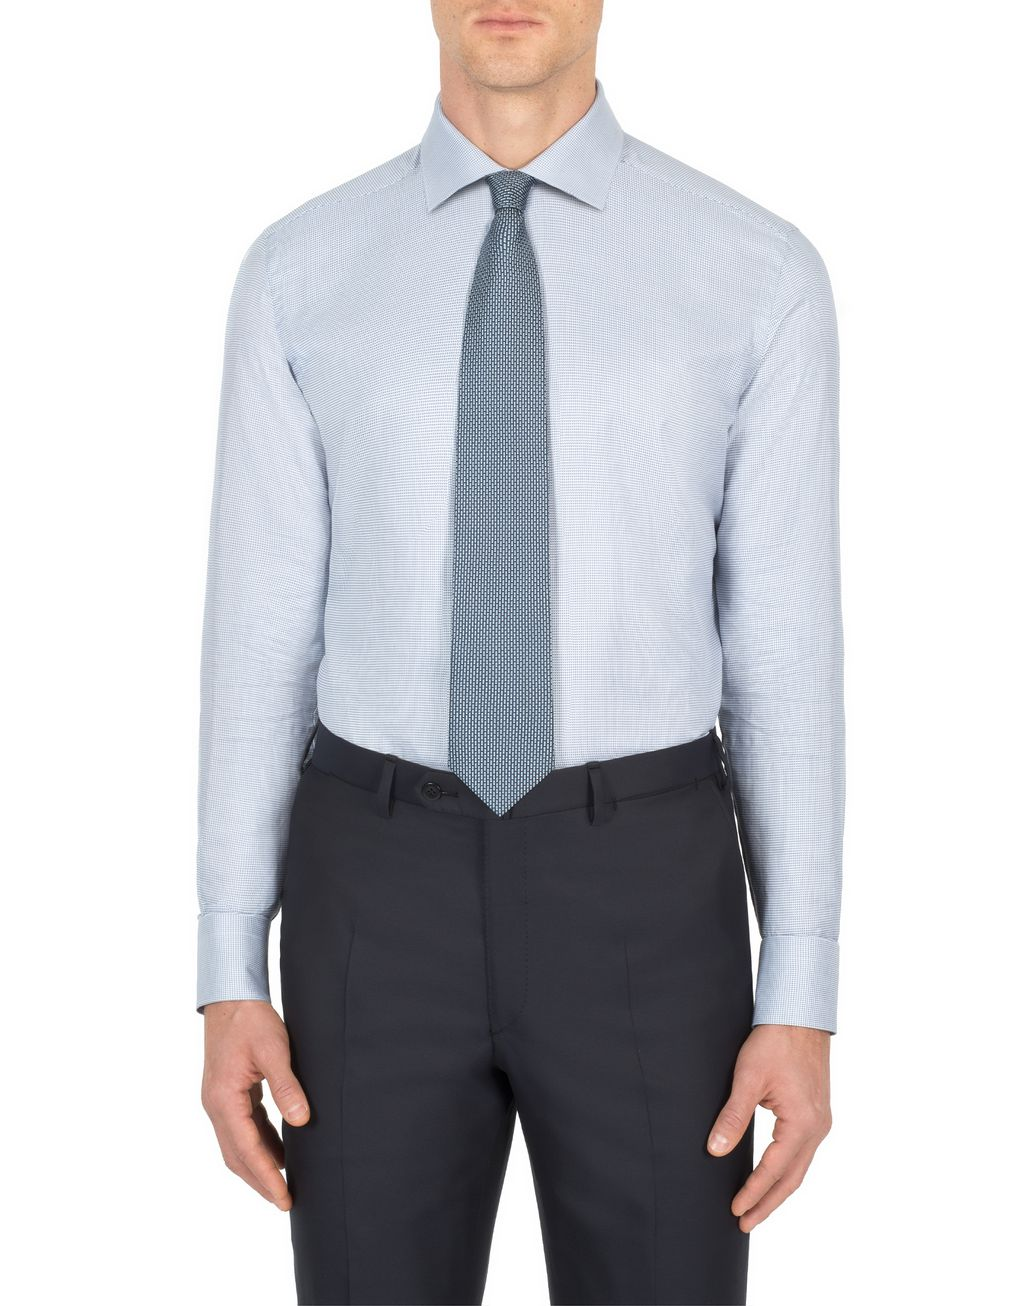 BRIONI Bluette and White Micro -Designed Formal Shirt Formal shirt Man r